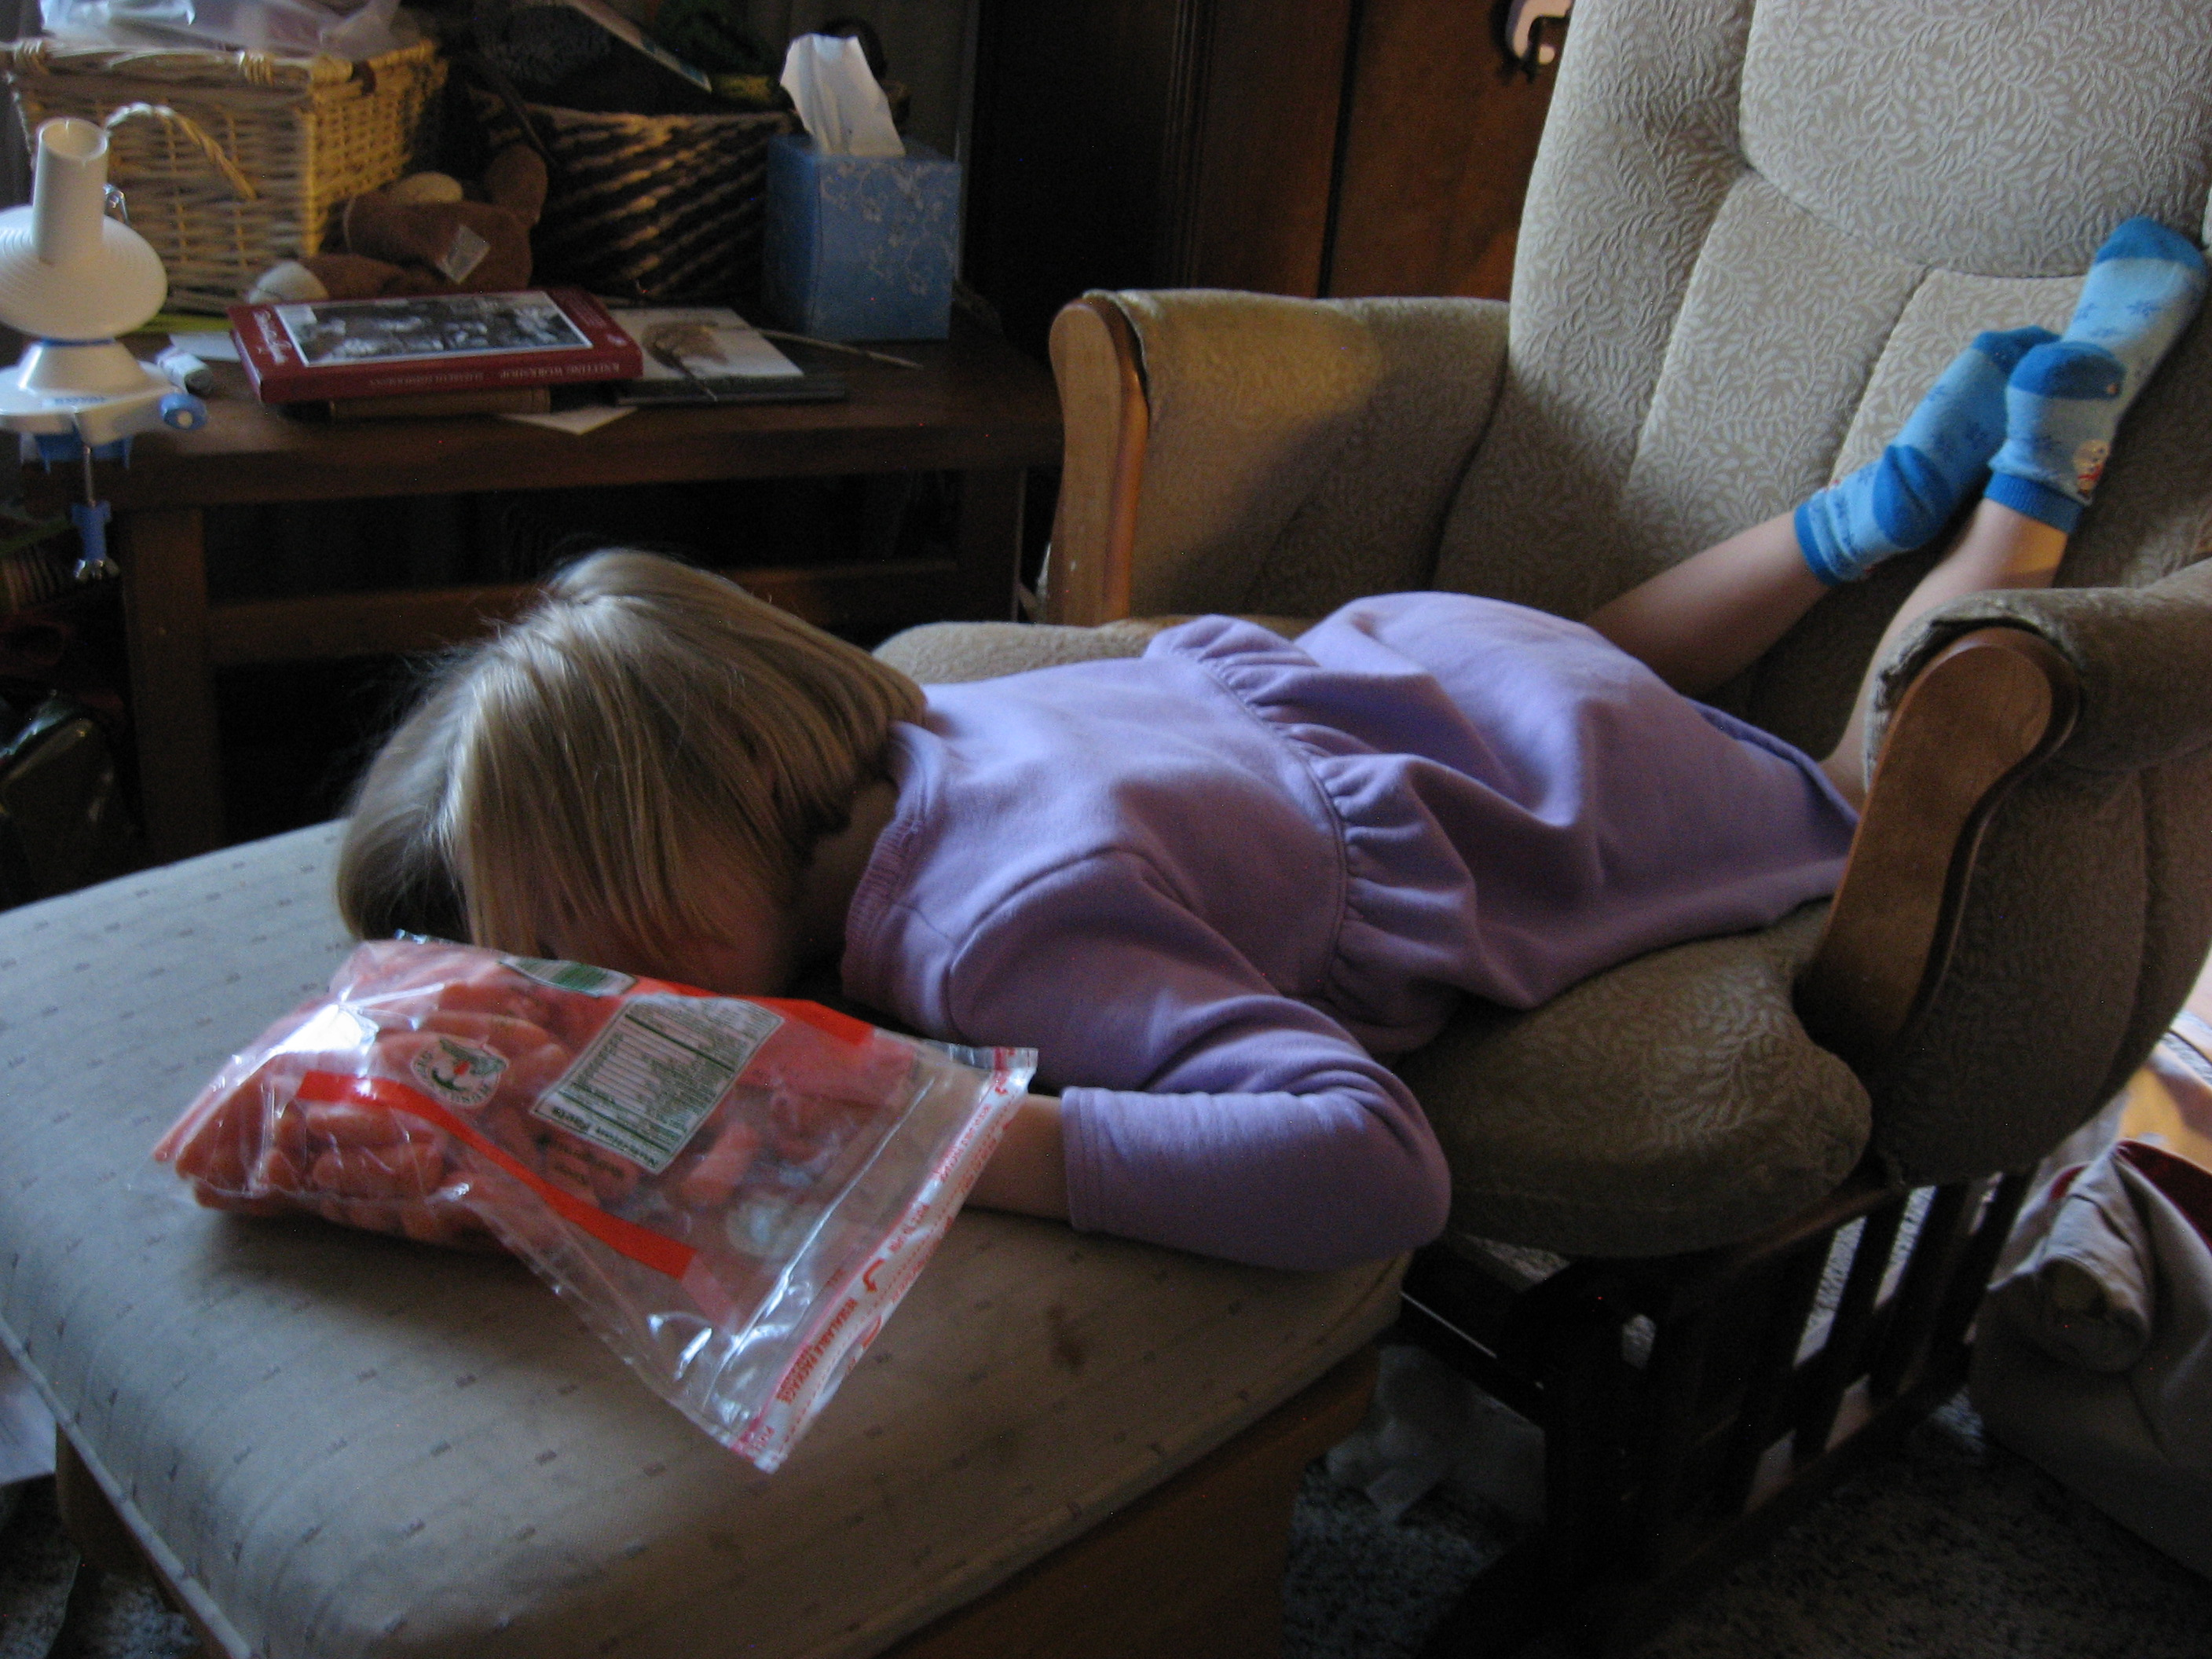 What? You've never fallen asleep with a bag of carrots before?